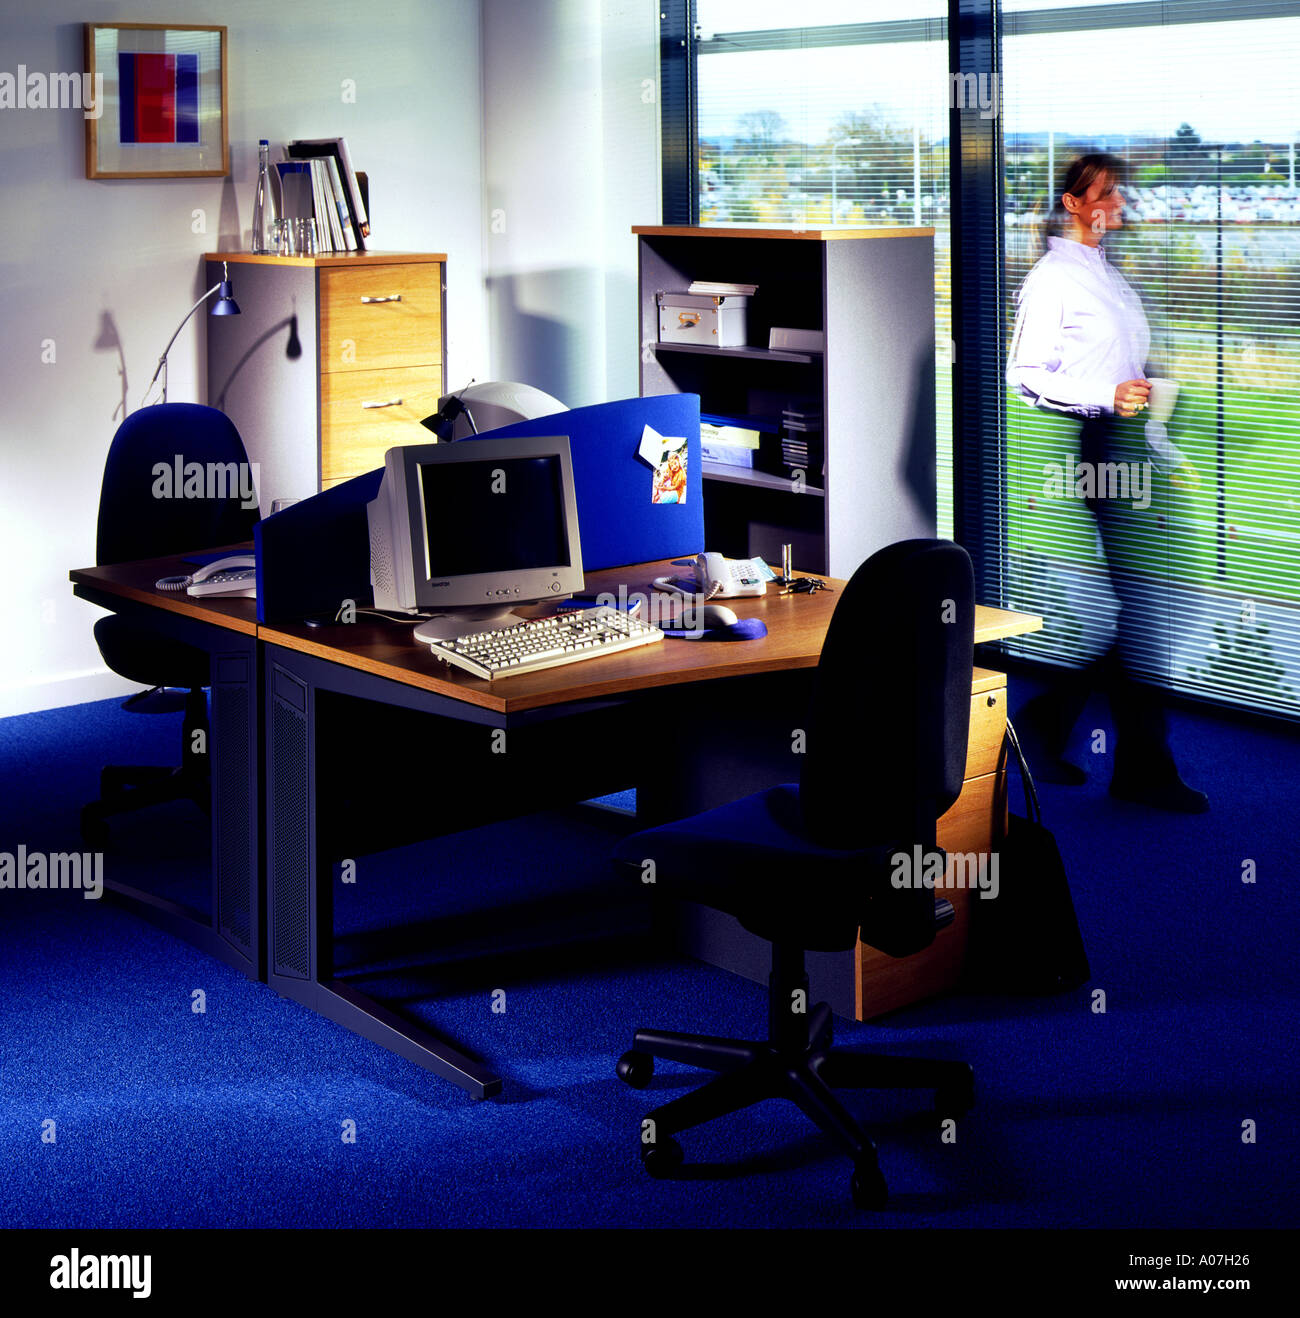 company tidy office. Chair, Desk, Carpet, Architecture, Business, Horizontal, Indoors, Office, In A Row, Tidy, Day, Illuminated, Showcase Interiors, Company Tidy Office